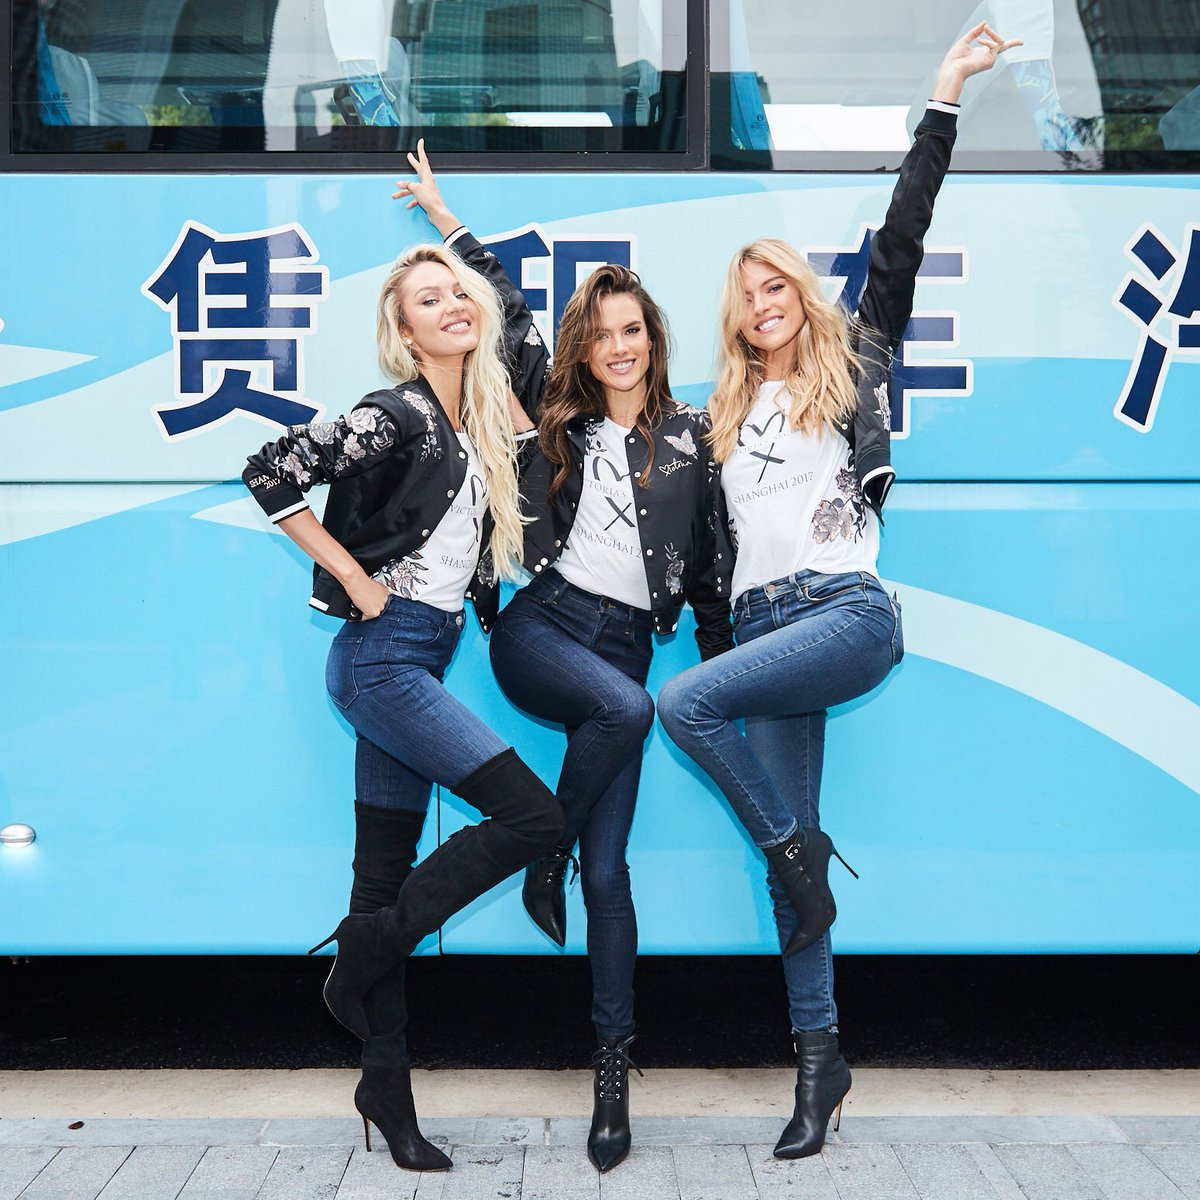 This magic moment: The Angels take their first look at the #VSFashionShow venue in Shanghai! https://t.co/rf4J3fCeSQ